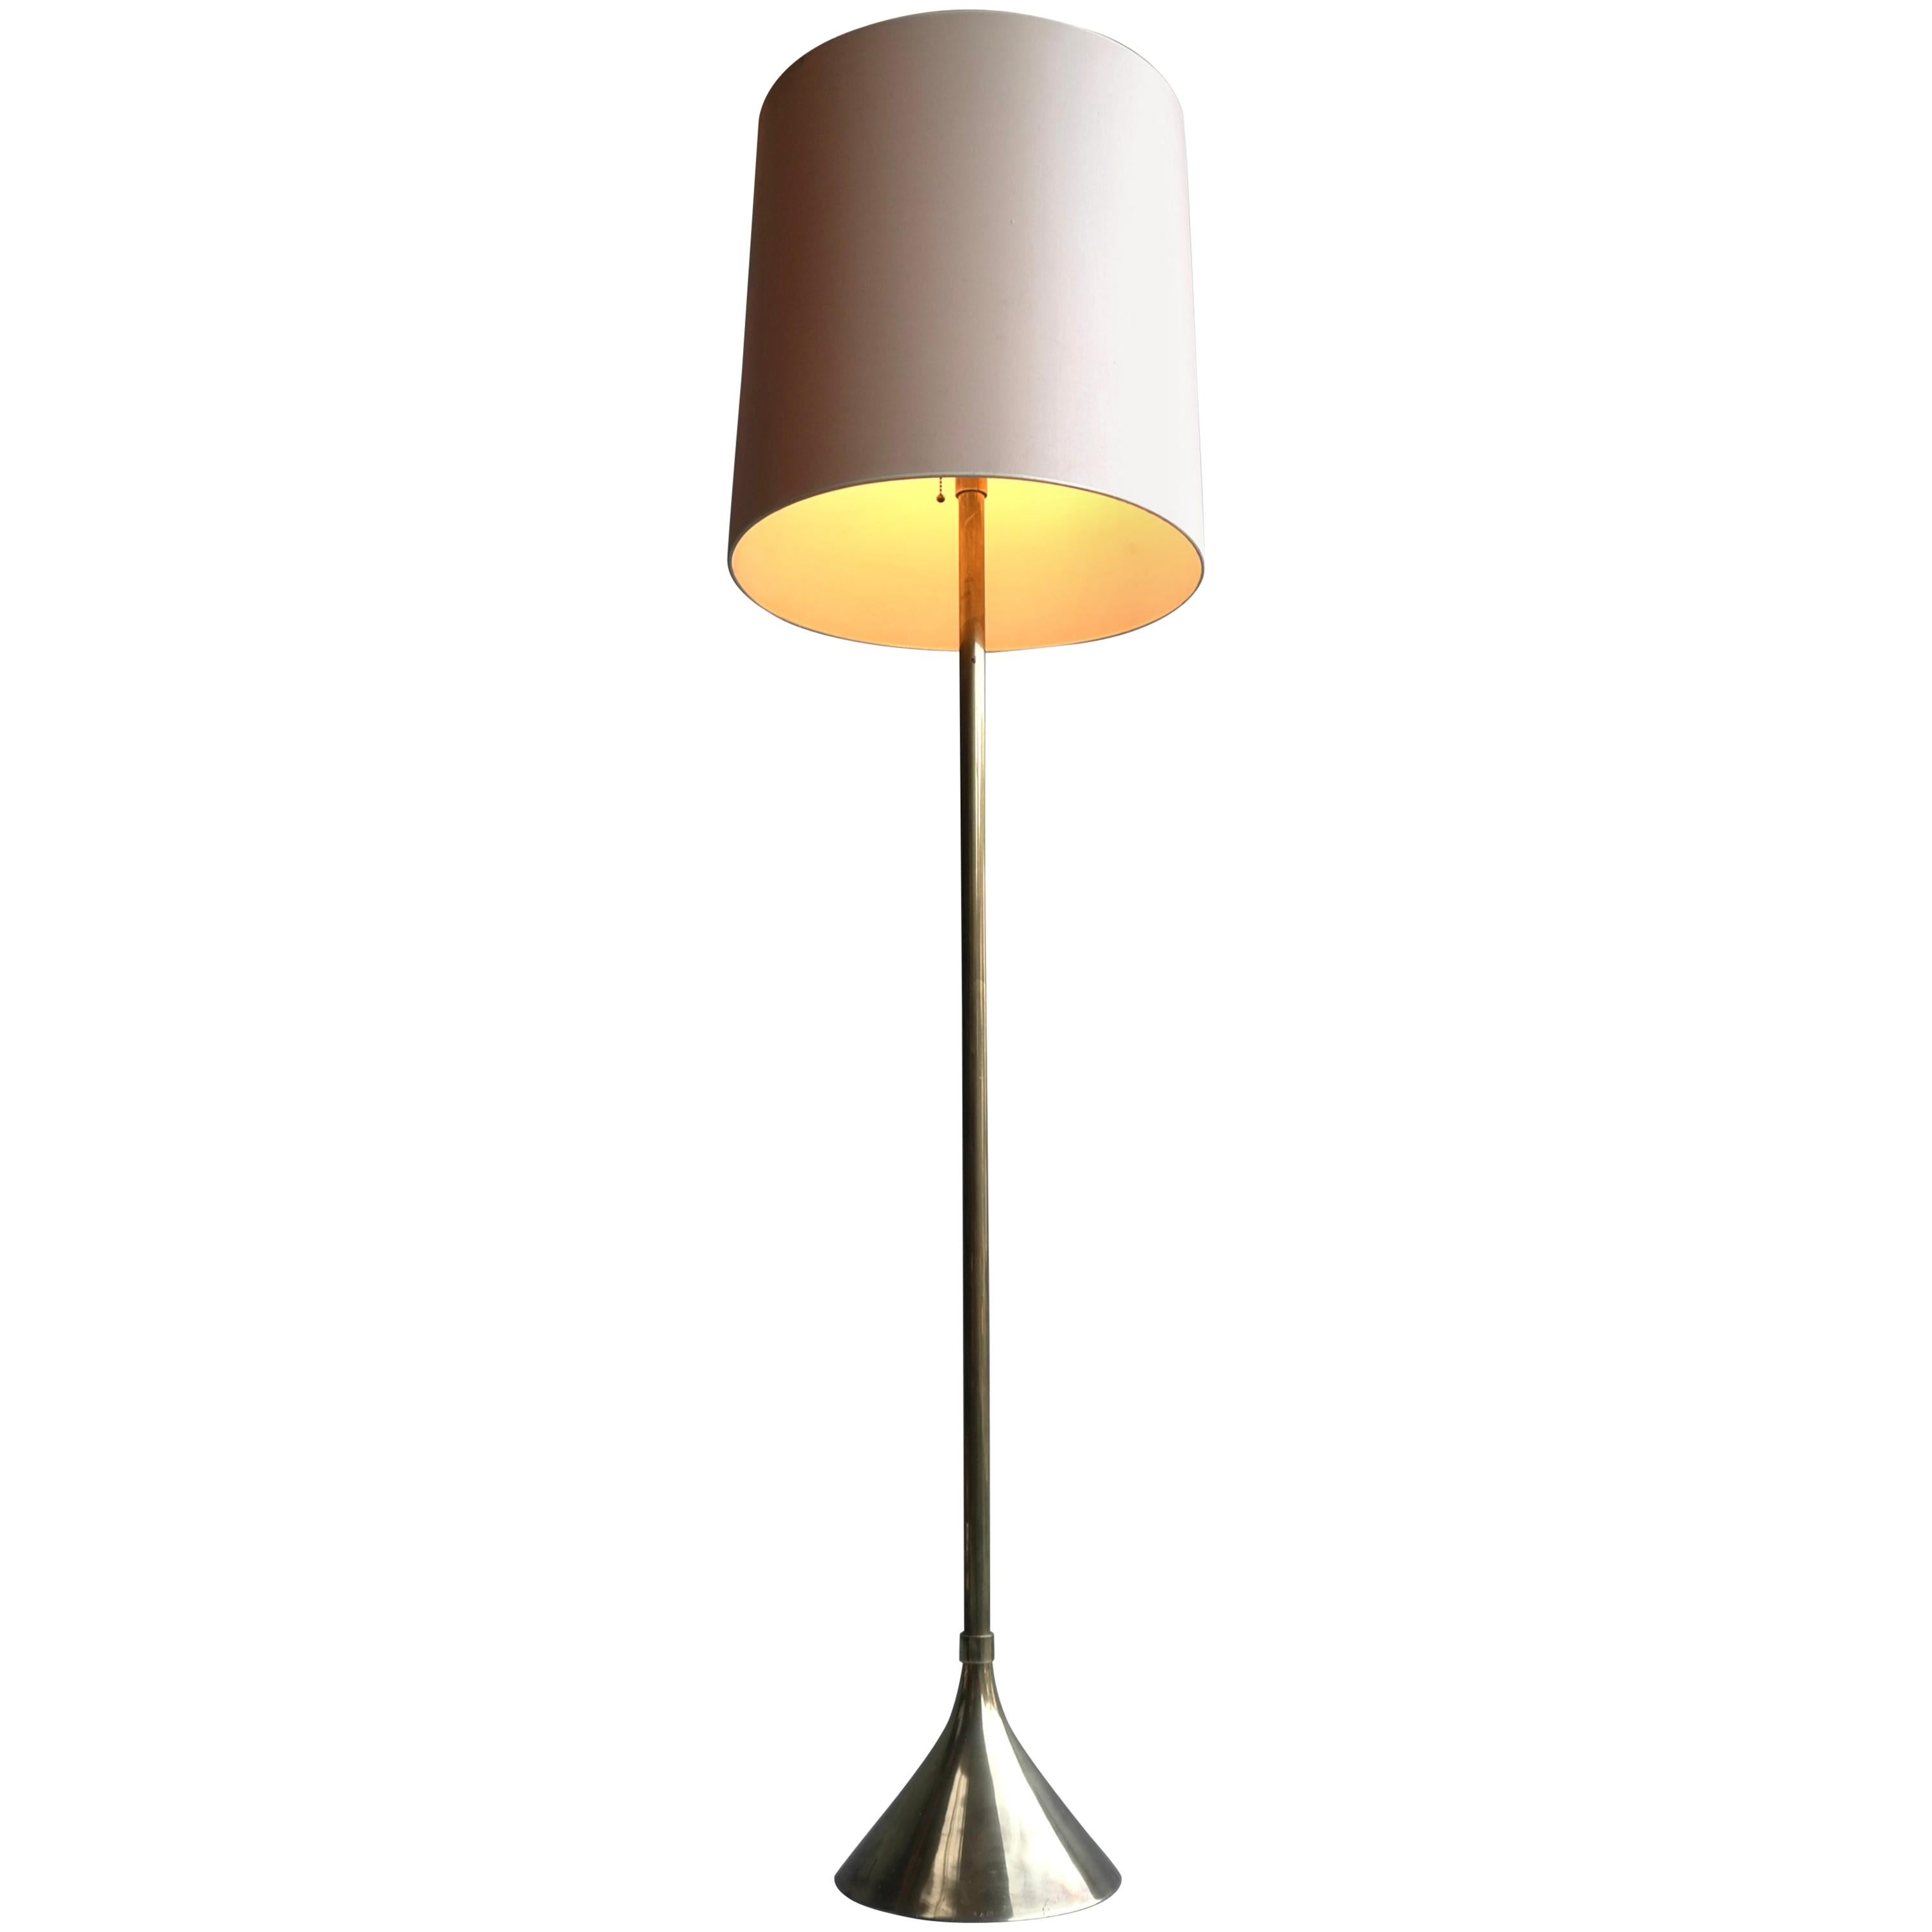 Floorlamp with Brass Trumpet Shaped Base, Italy, 1960s